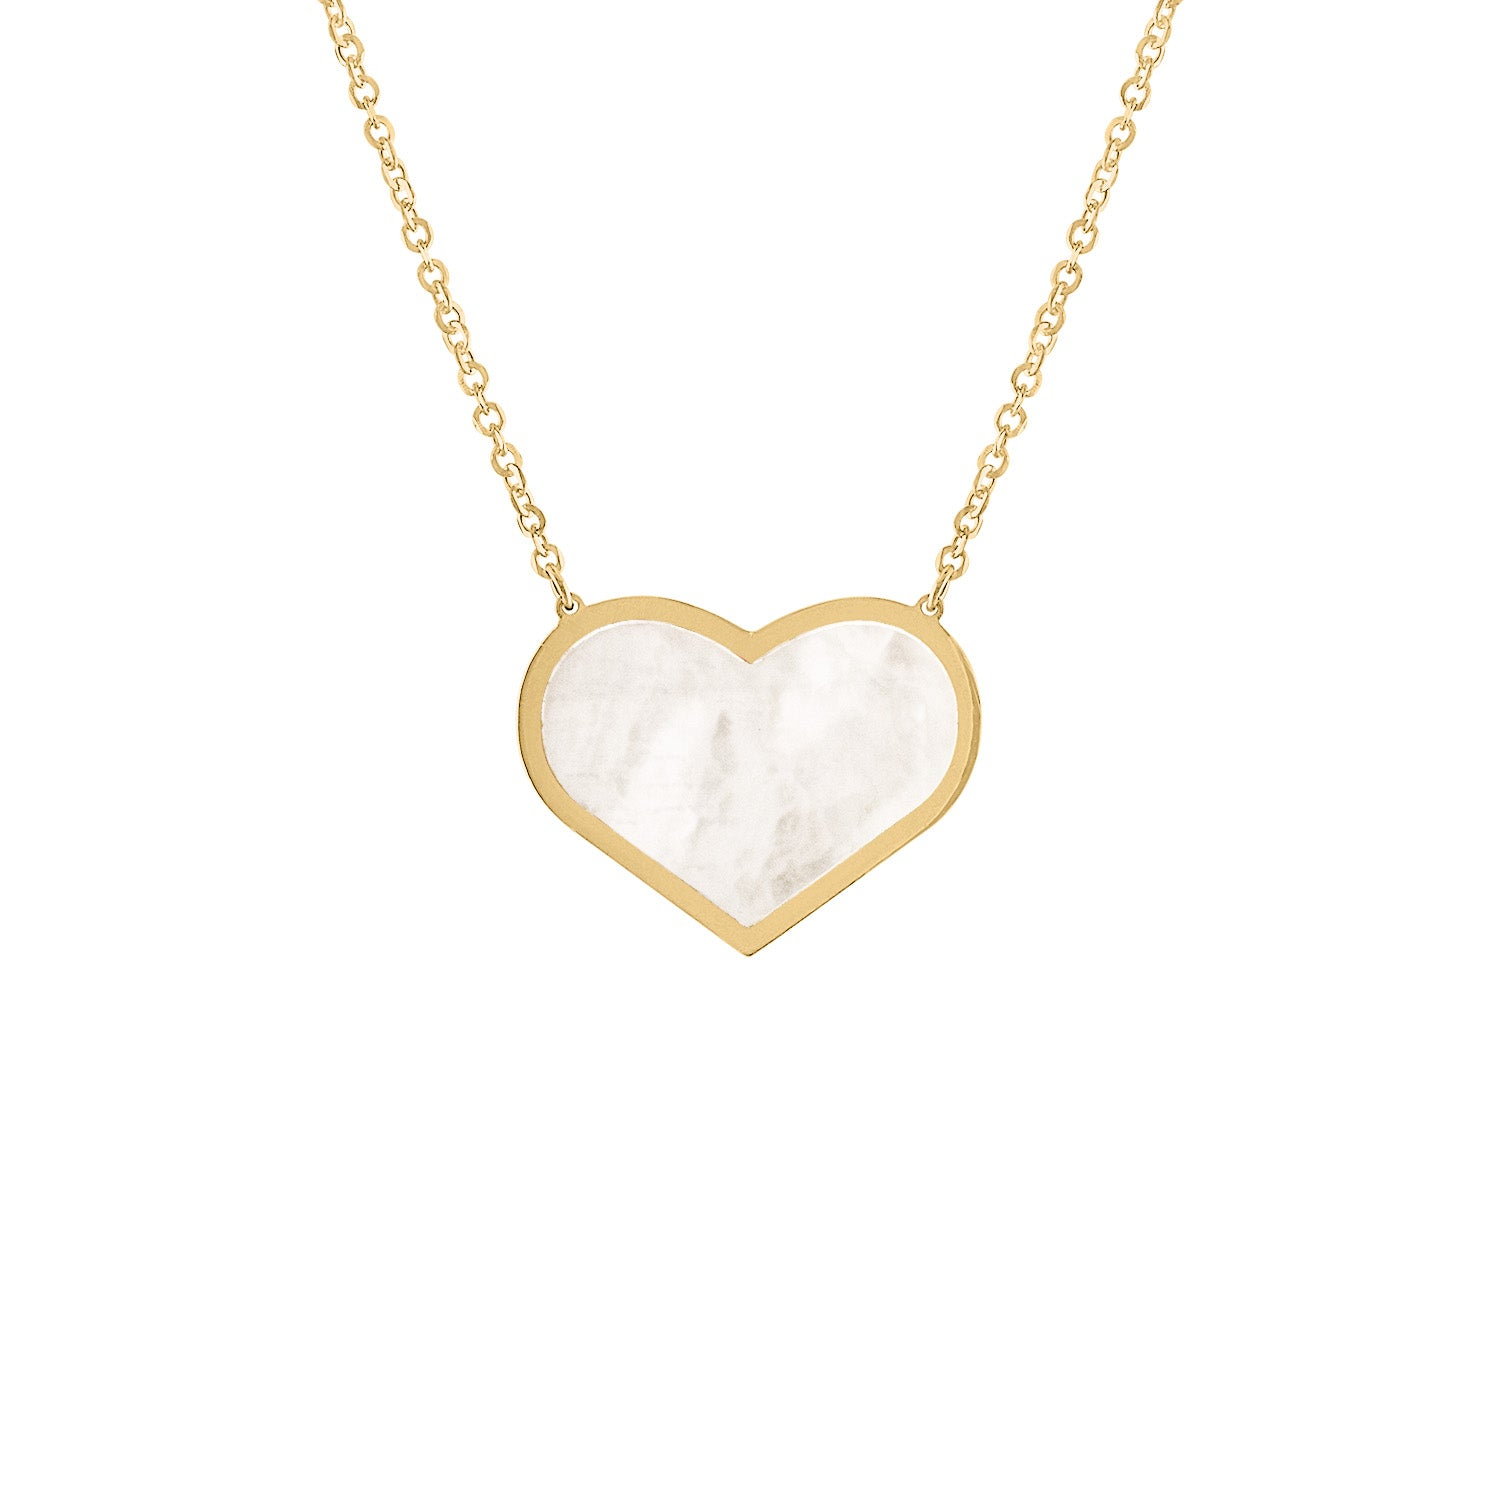 14KT GOLD LARGE MOTHER OF PEARL HEART NECKLACE